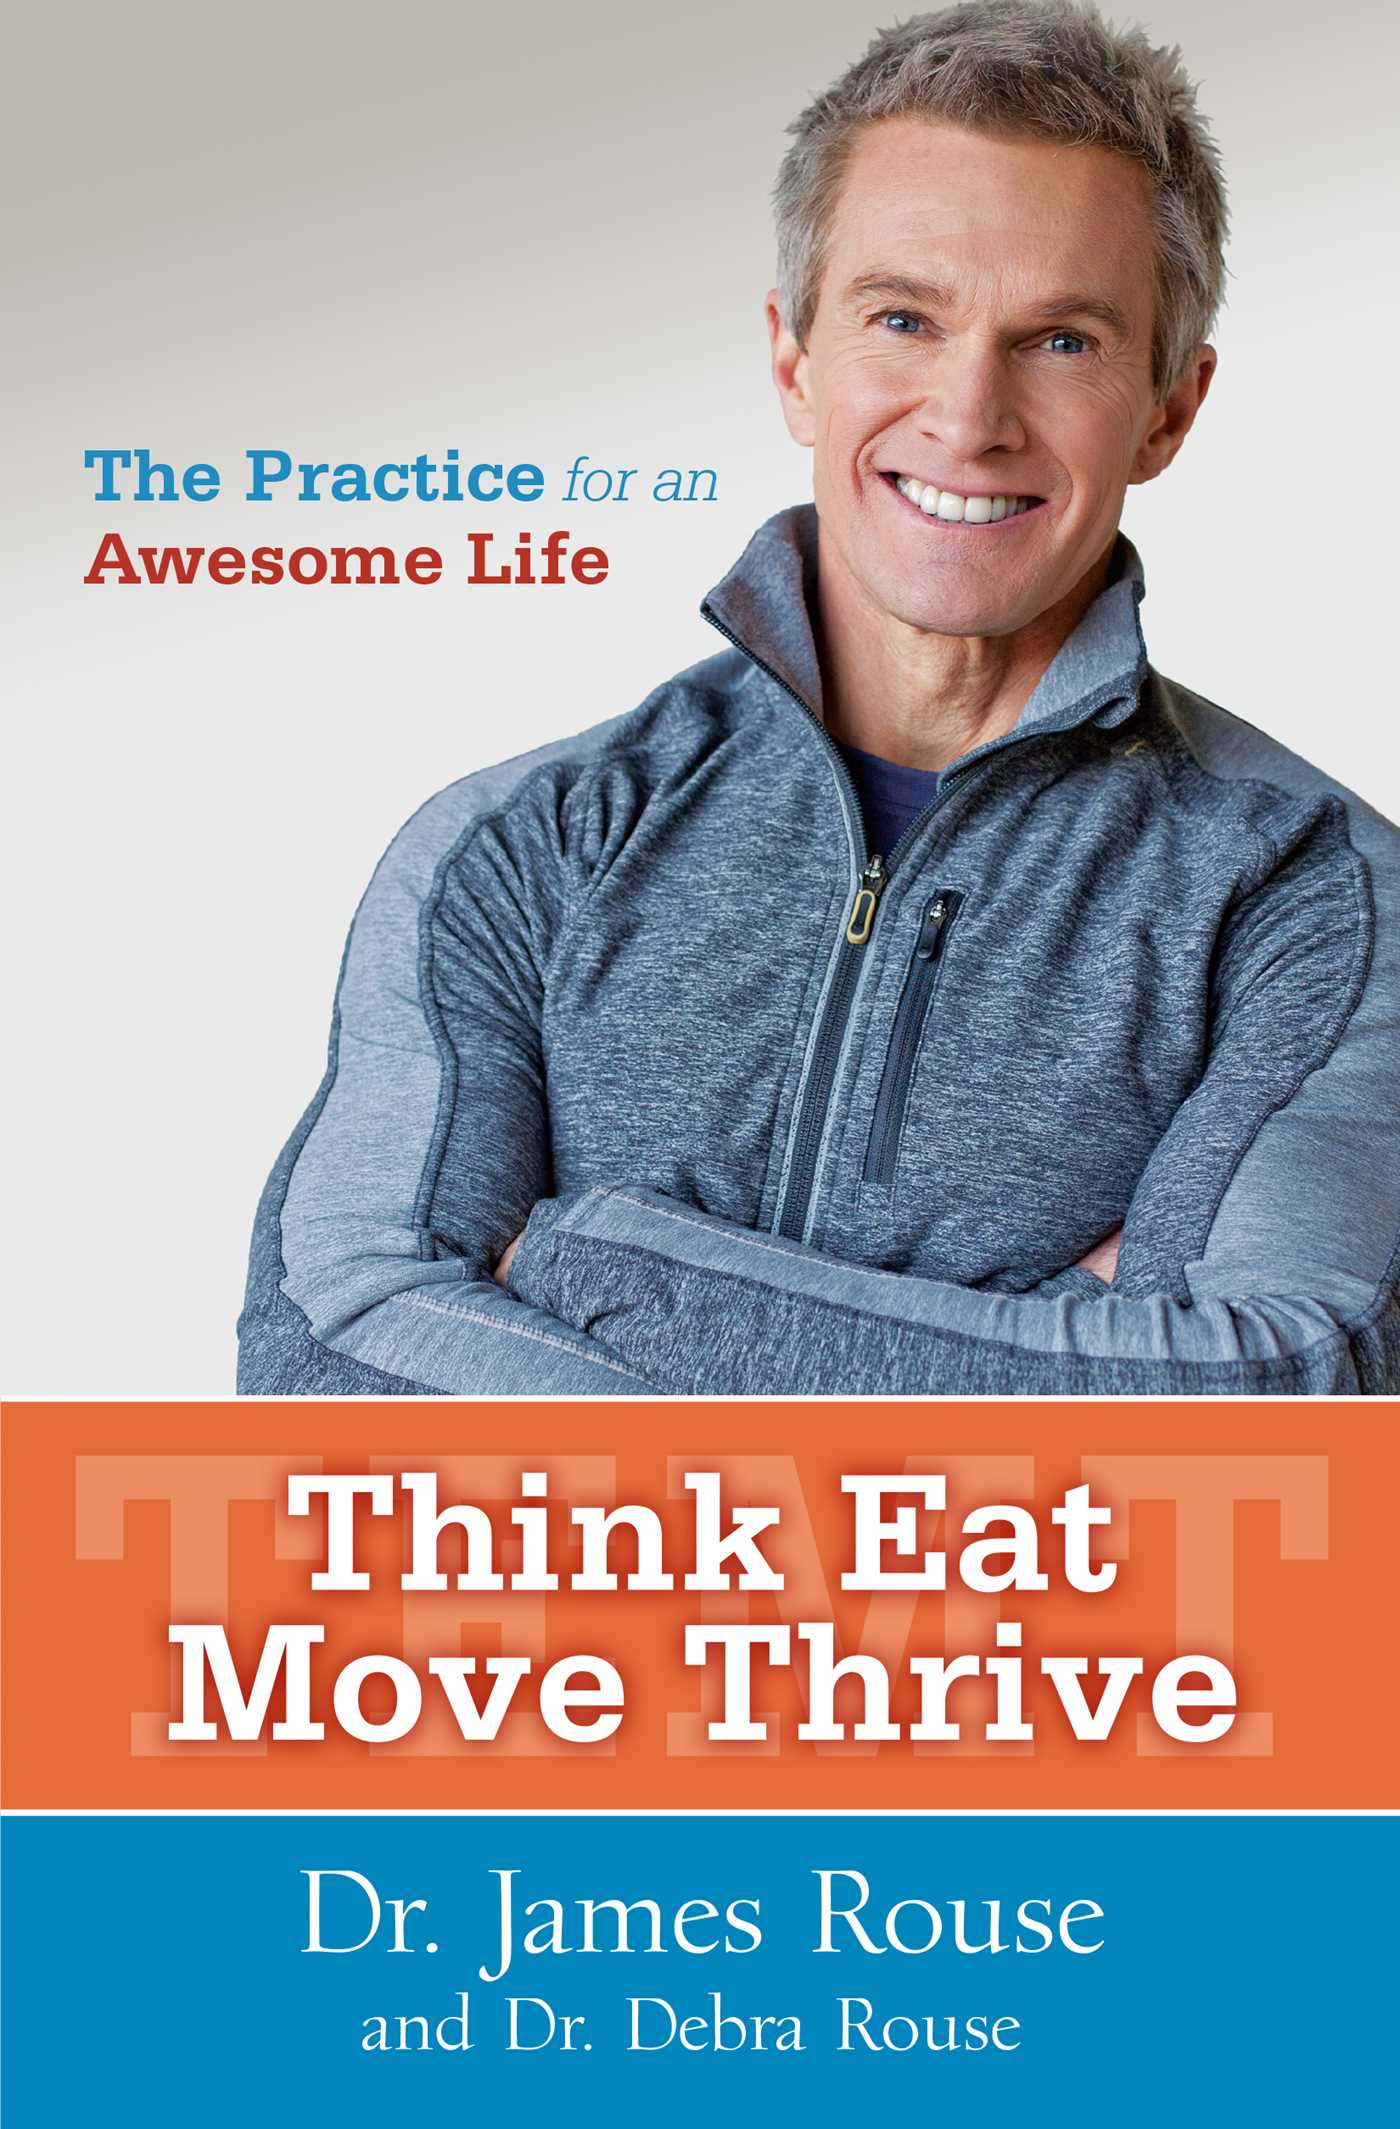 Think eat move thrive 9781476769974 hr